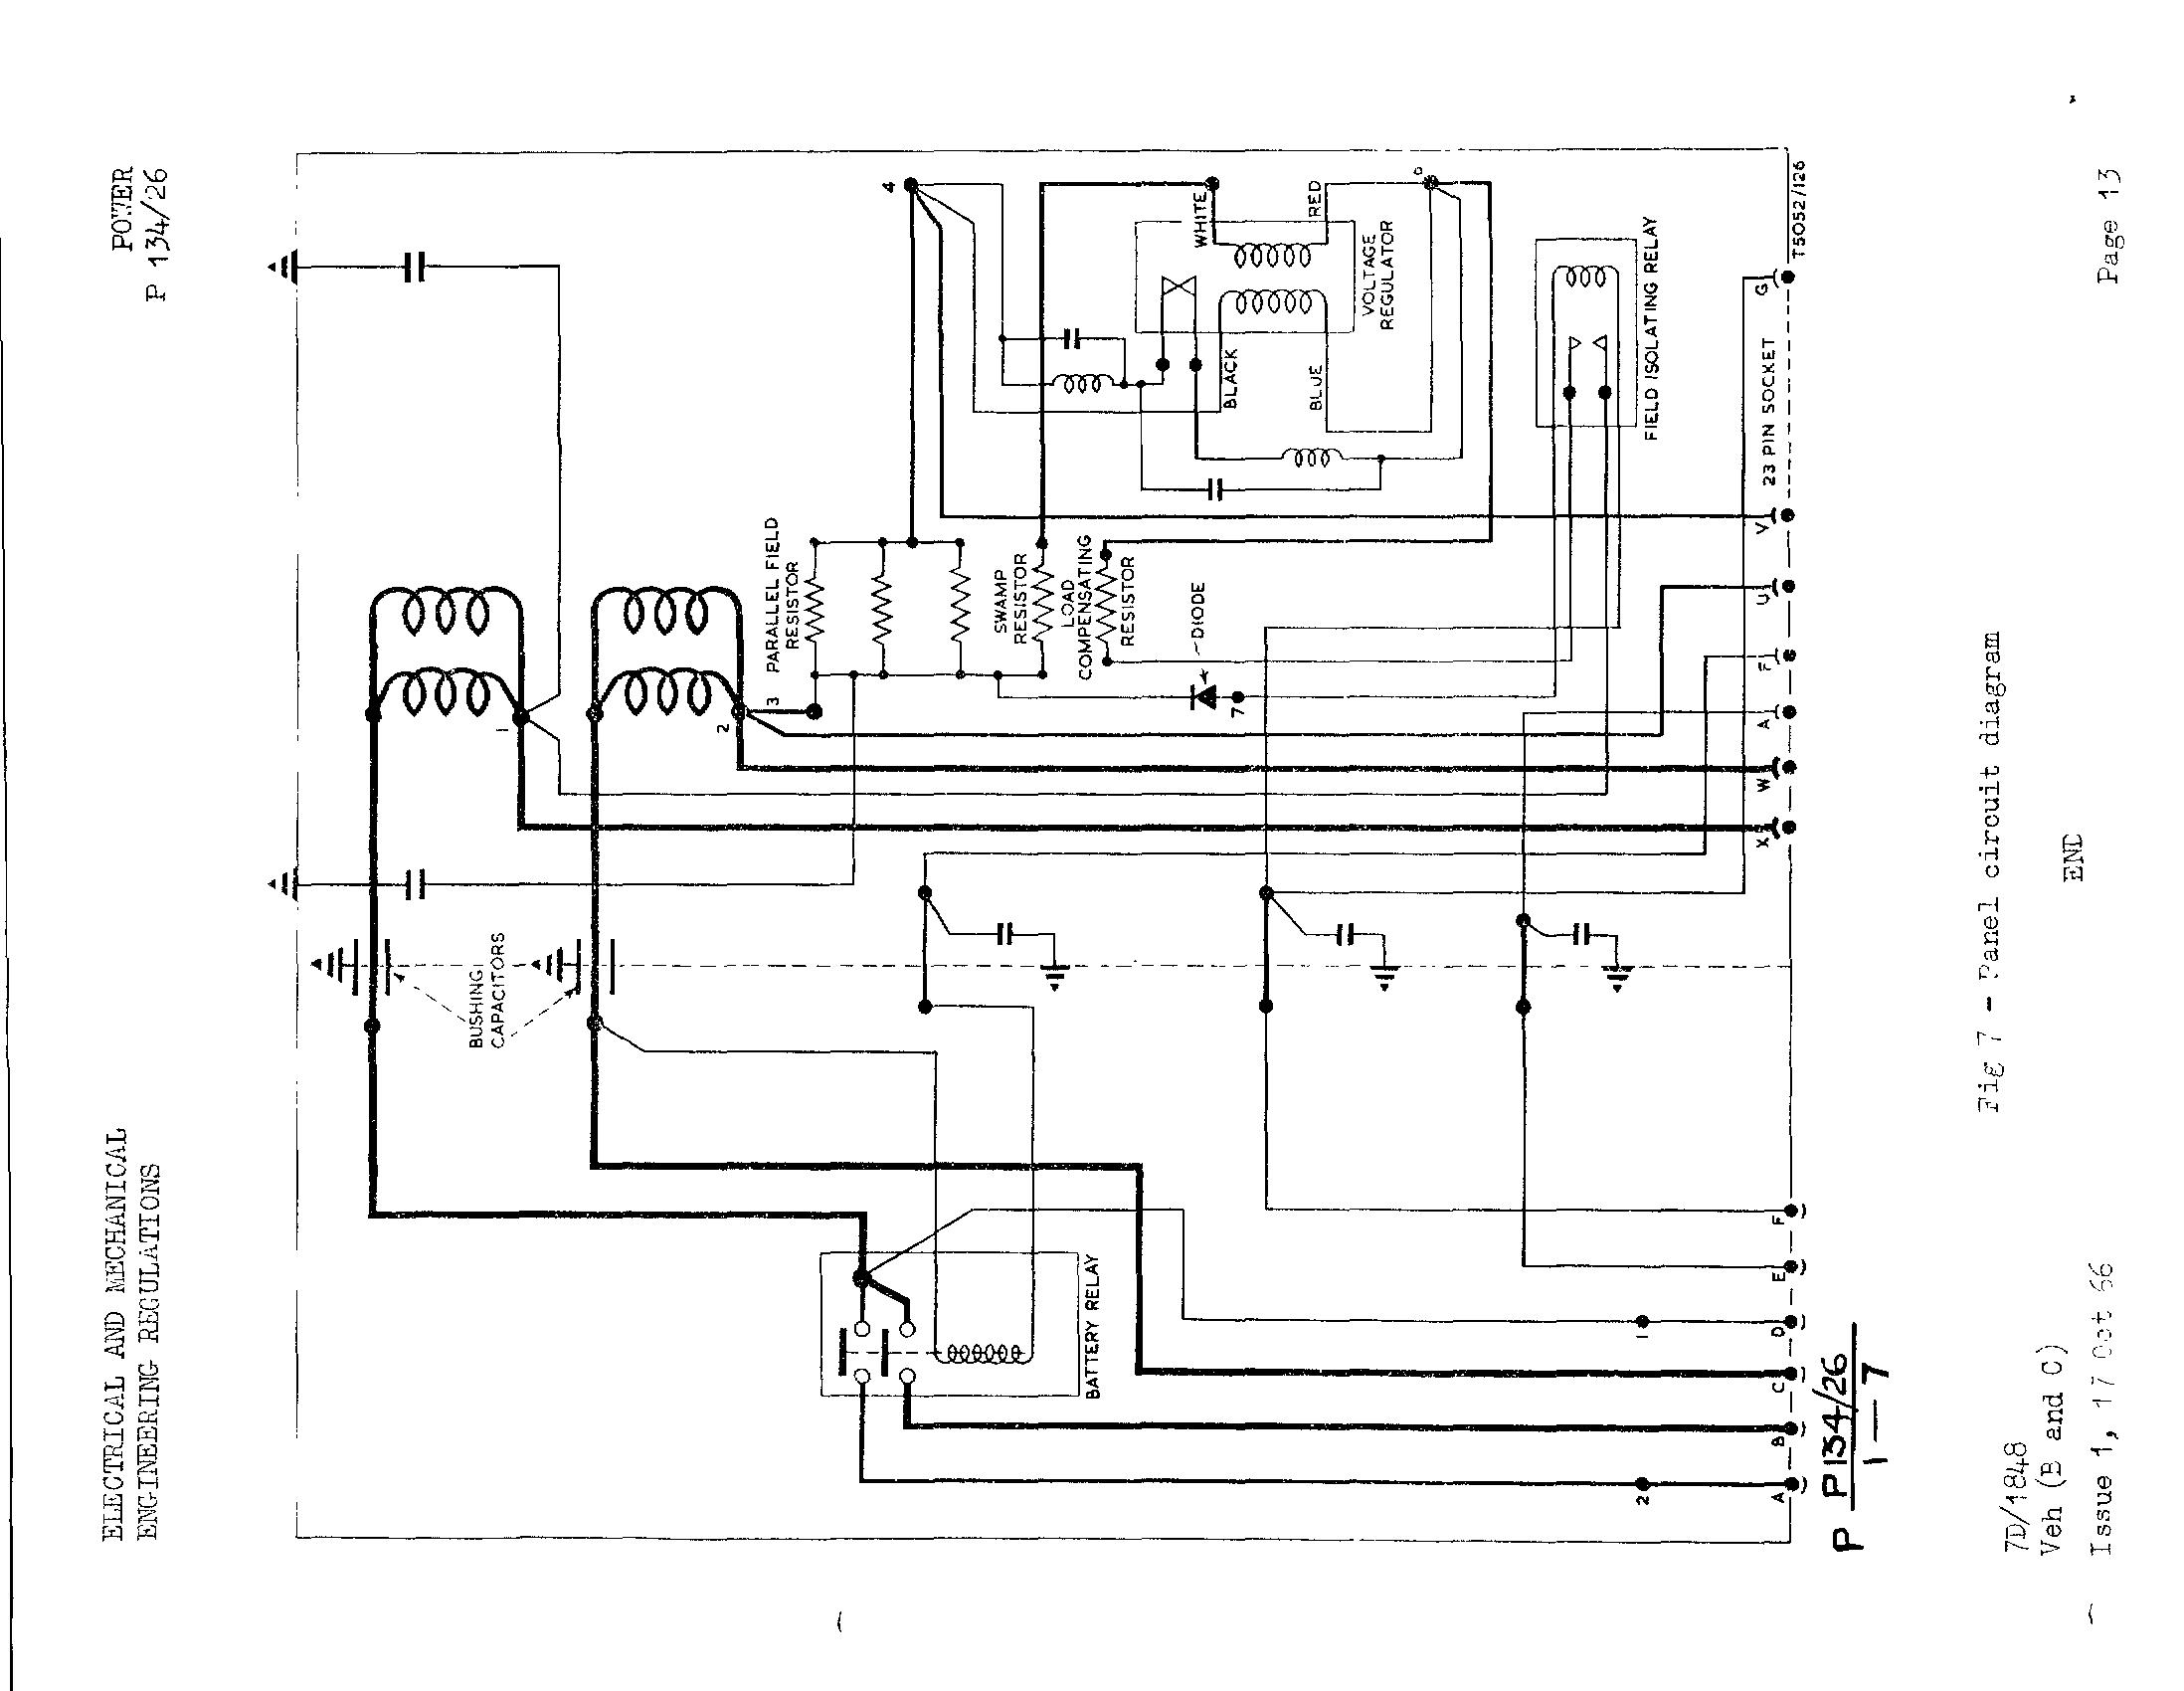 Land Rovers Military Specifics 200 Amp Panel Wiring Diagram These Are Generator No 9 Mk 2 From Emer Power W 134 26